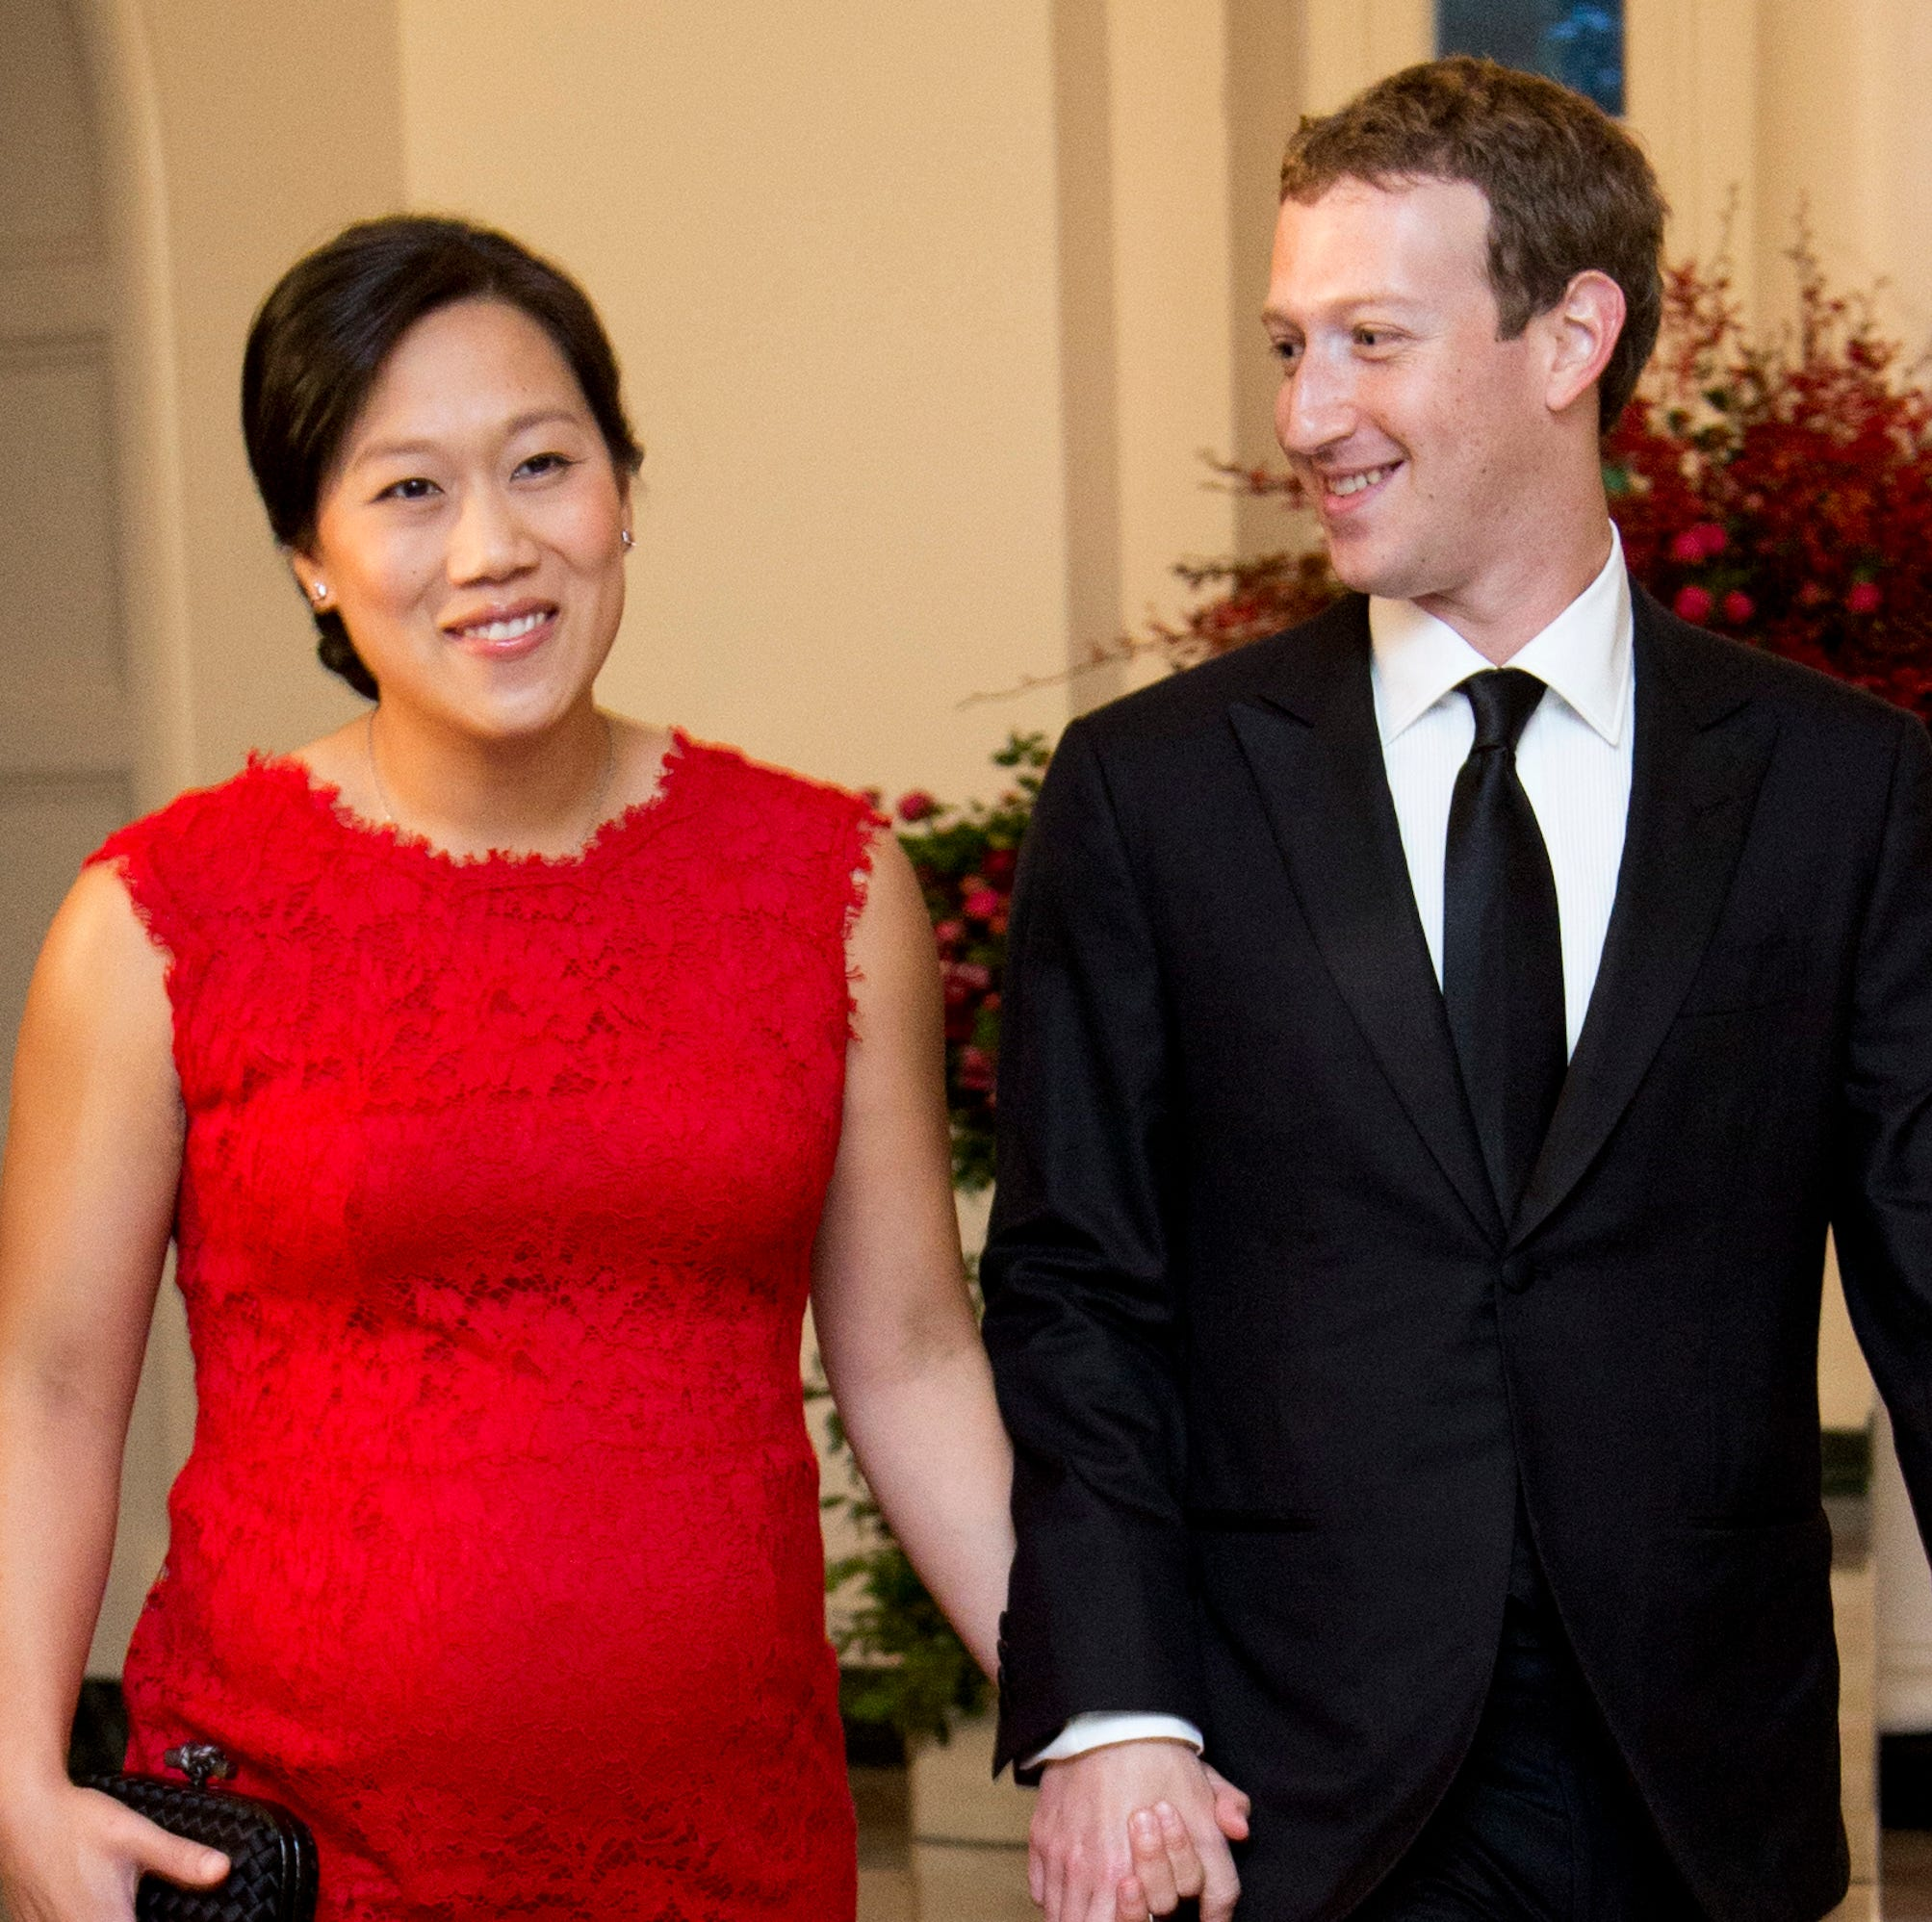 Facebook CEO Mark Zuckerberg and his wife Priscilla Chan, arrive for a State Dinner in honor of Chinese President Xi Jinping, in the East Room of the White House in Washington.